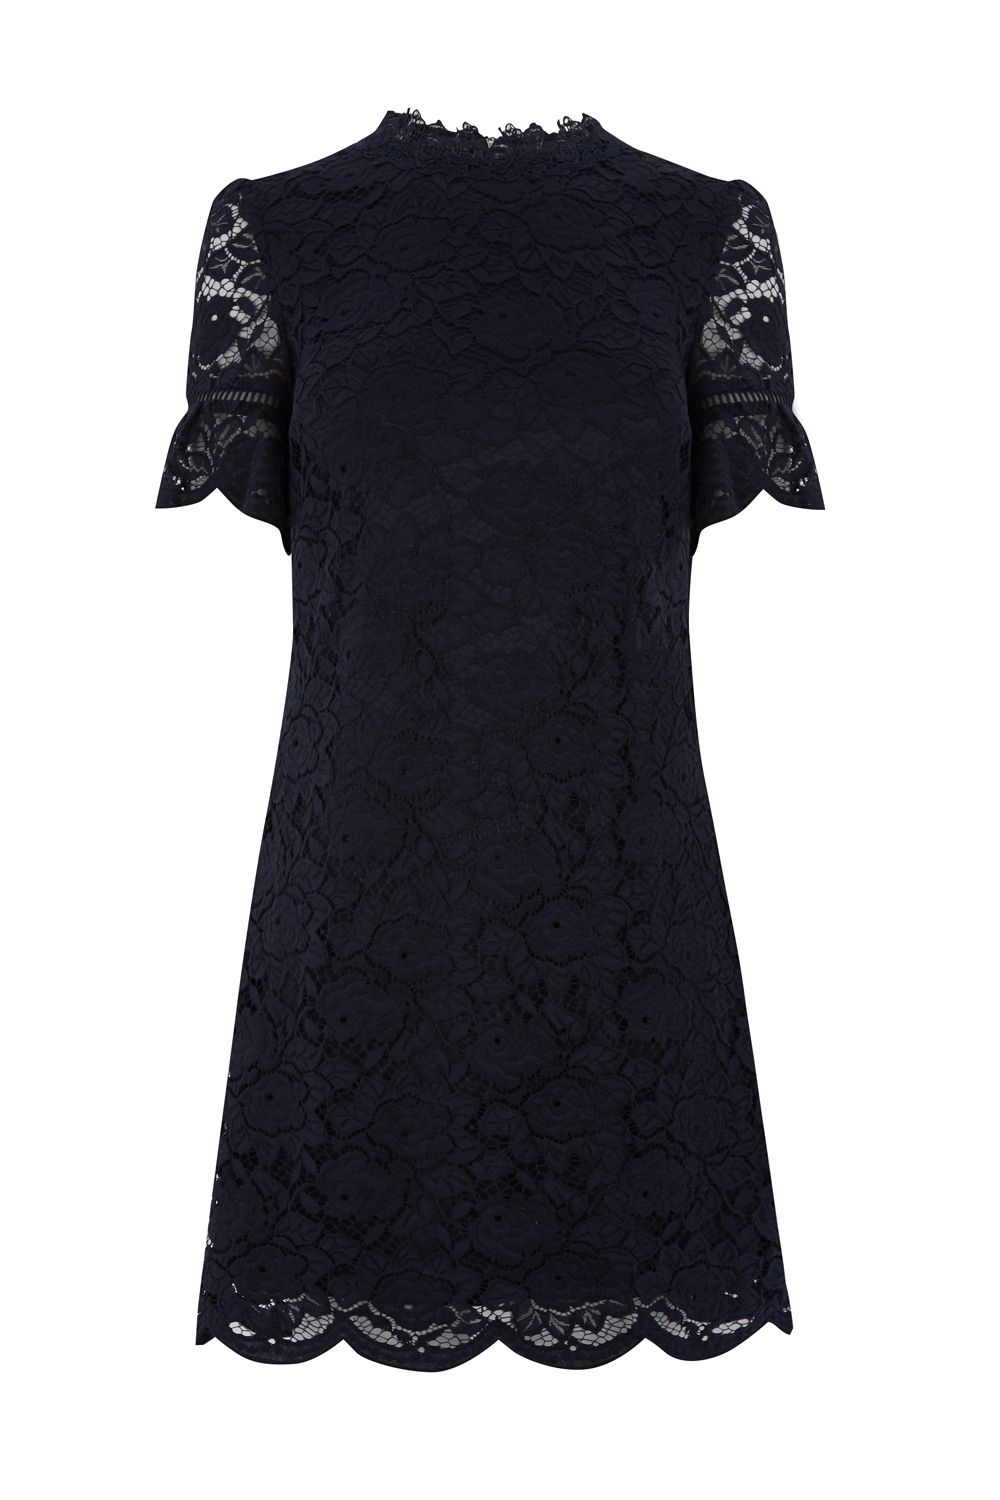 Oasis Lace High Neck Flute Slv Dress, Blue